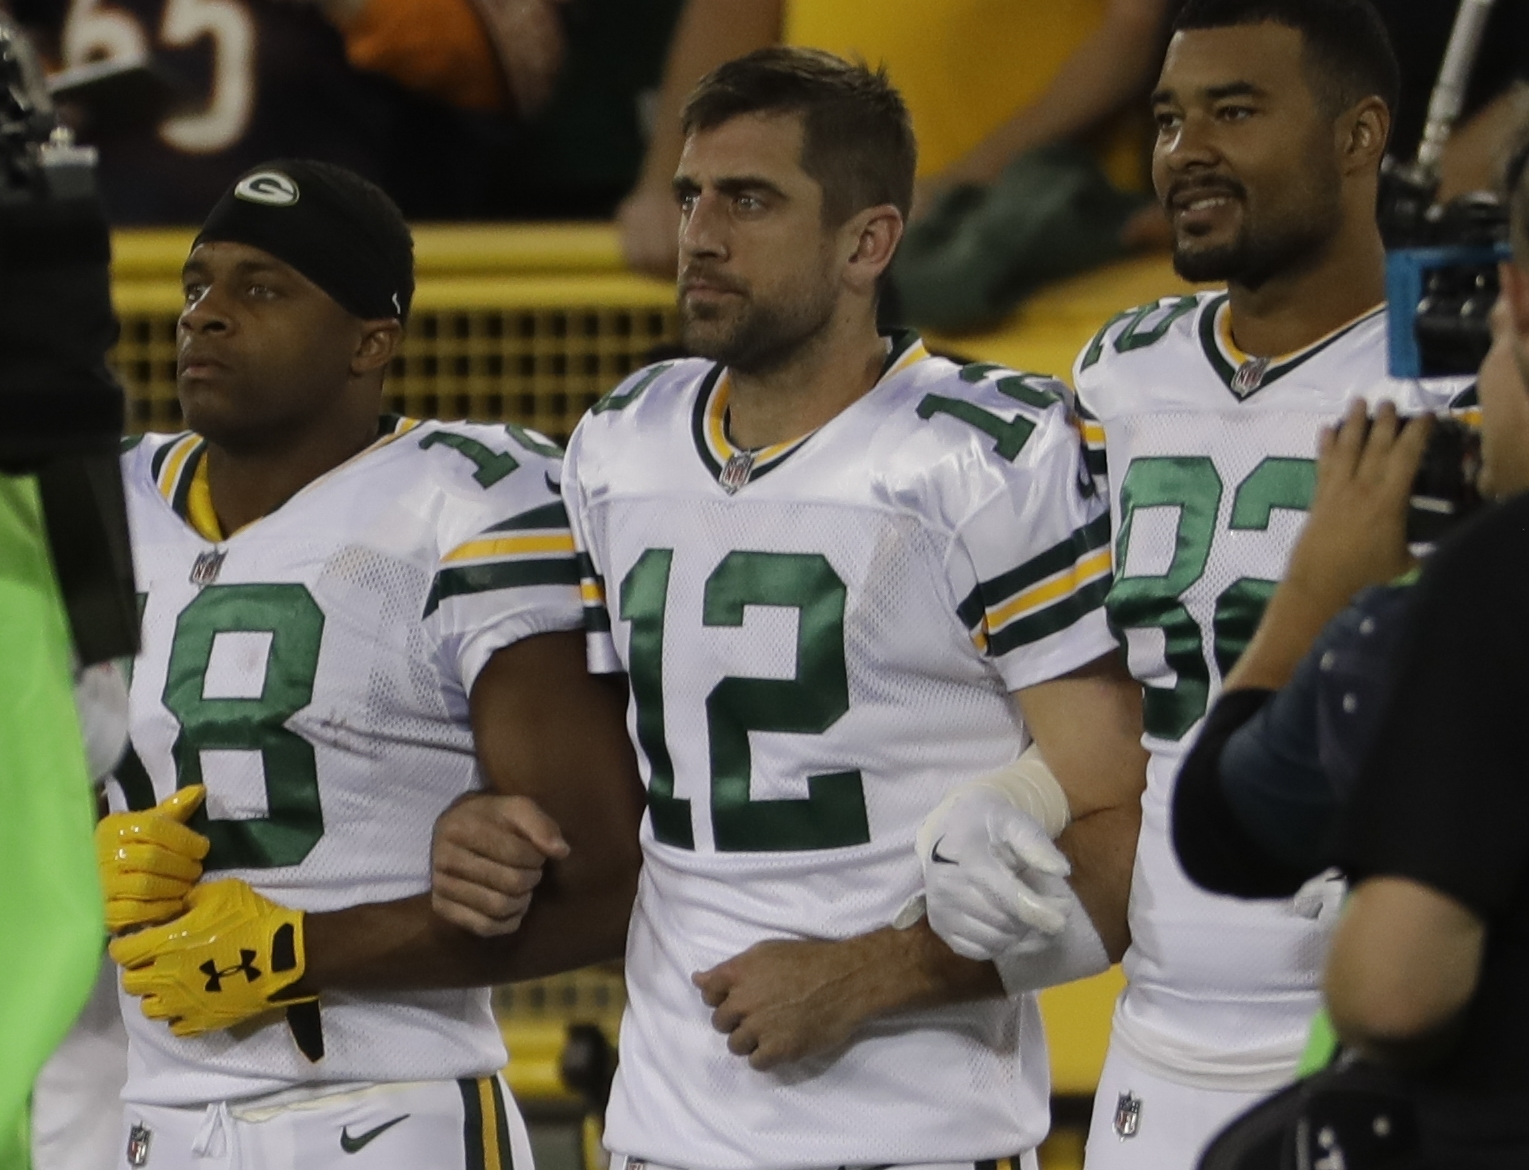 Green Bay Packers' Aaron Rodgers links arms with Richard Rodgers and Randall Cobb during the national anthem before an NFL football game against the Chicago Bears Thursday, Sept. 28, 2017, in Green Bay, Wis. (AP Photo/Morry Gash)